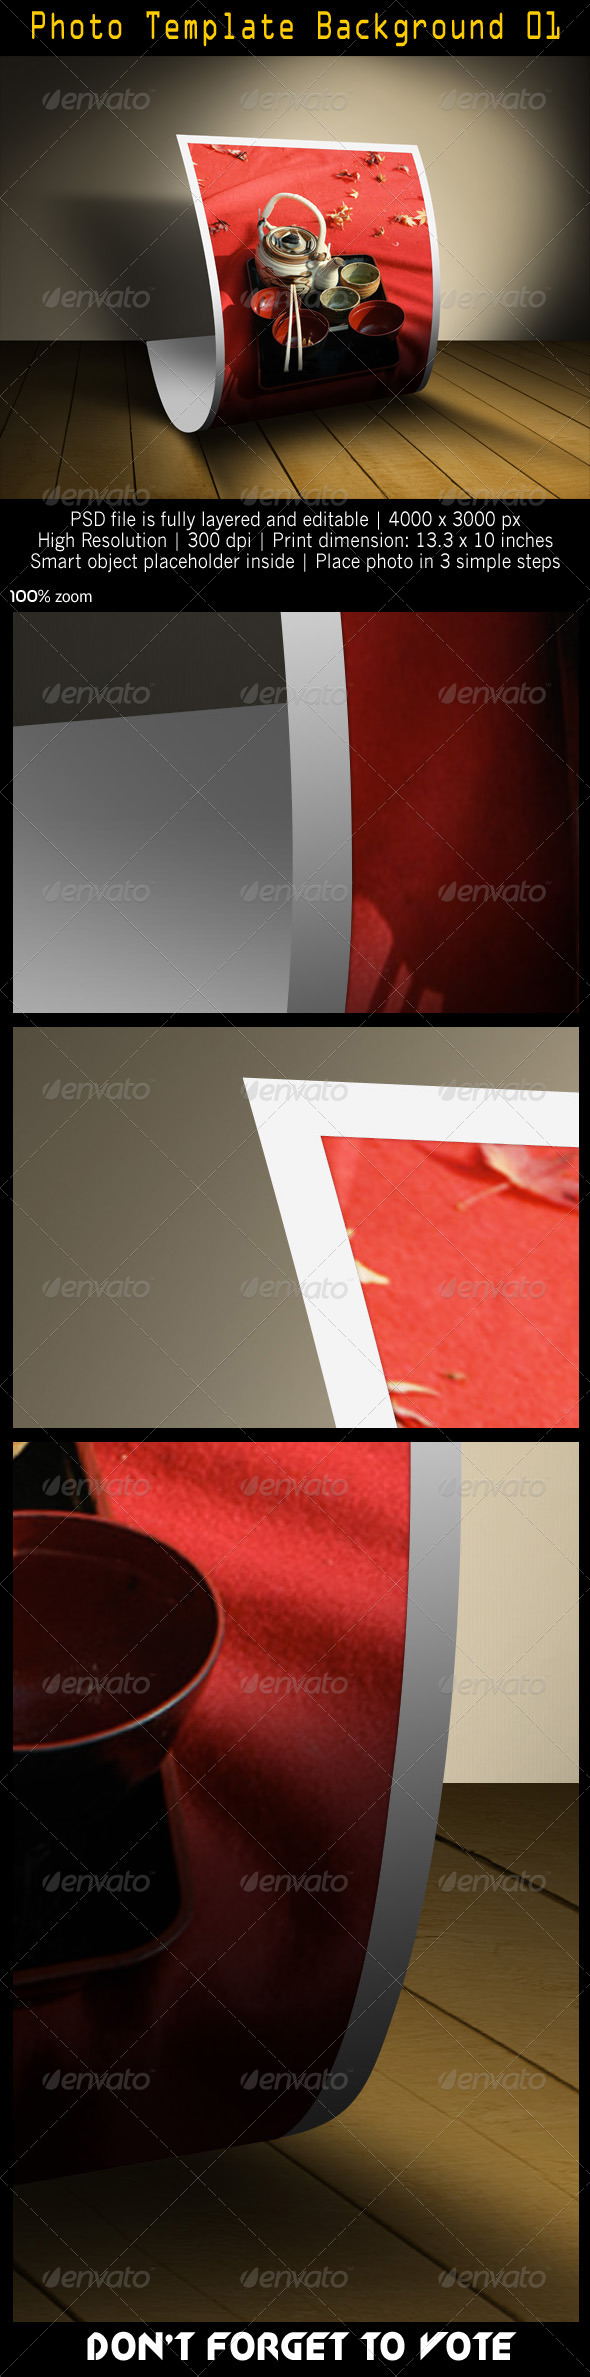 GraphicRiver Photo Template Background 01 4947227